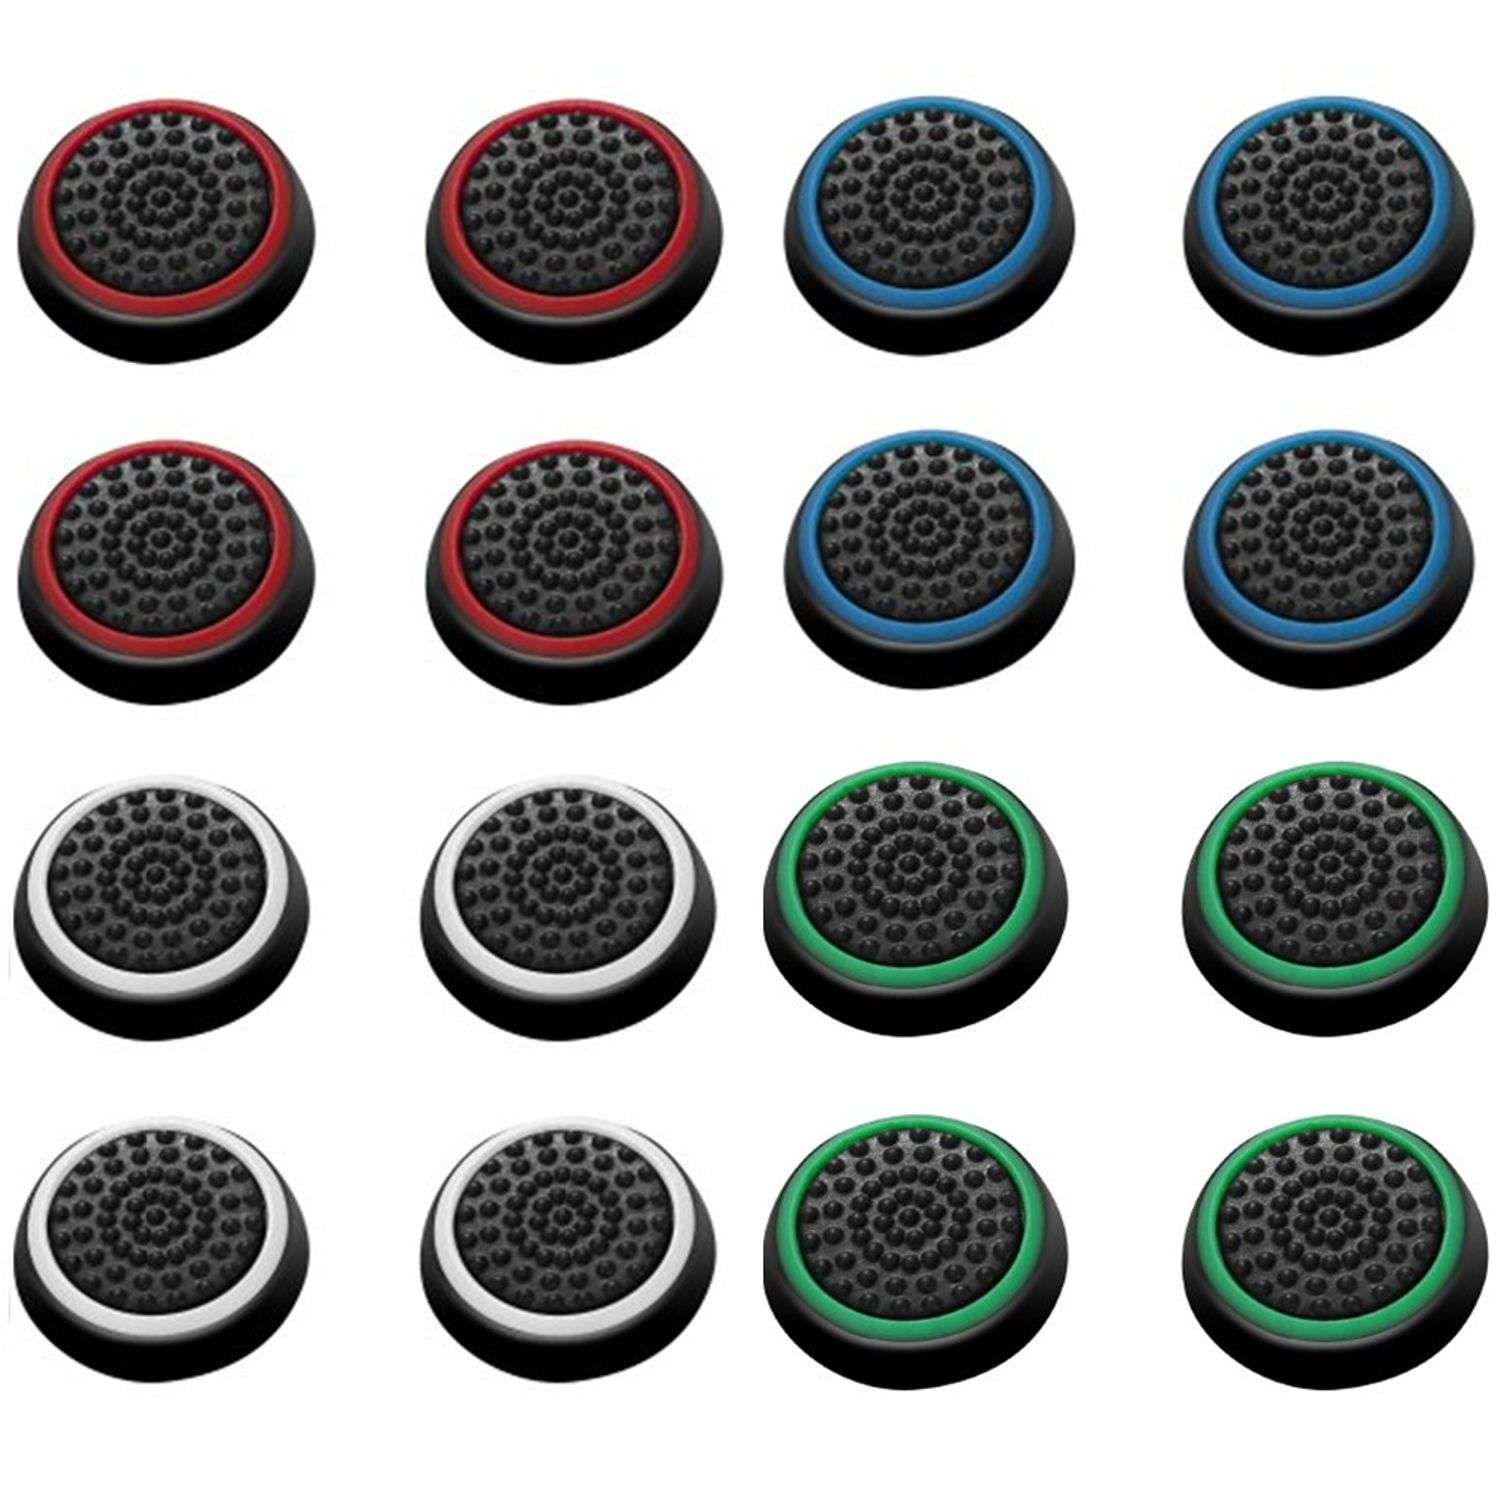 Insten 16 pcs Green/Red/Blue/White Controller Analog Thumbstick Cap for Xbox 360/Xbox One Sony PlayStation 2/3/4